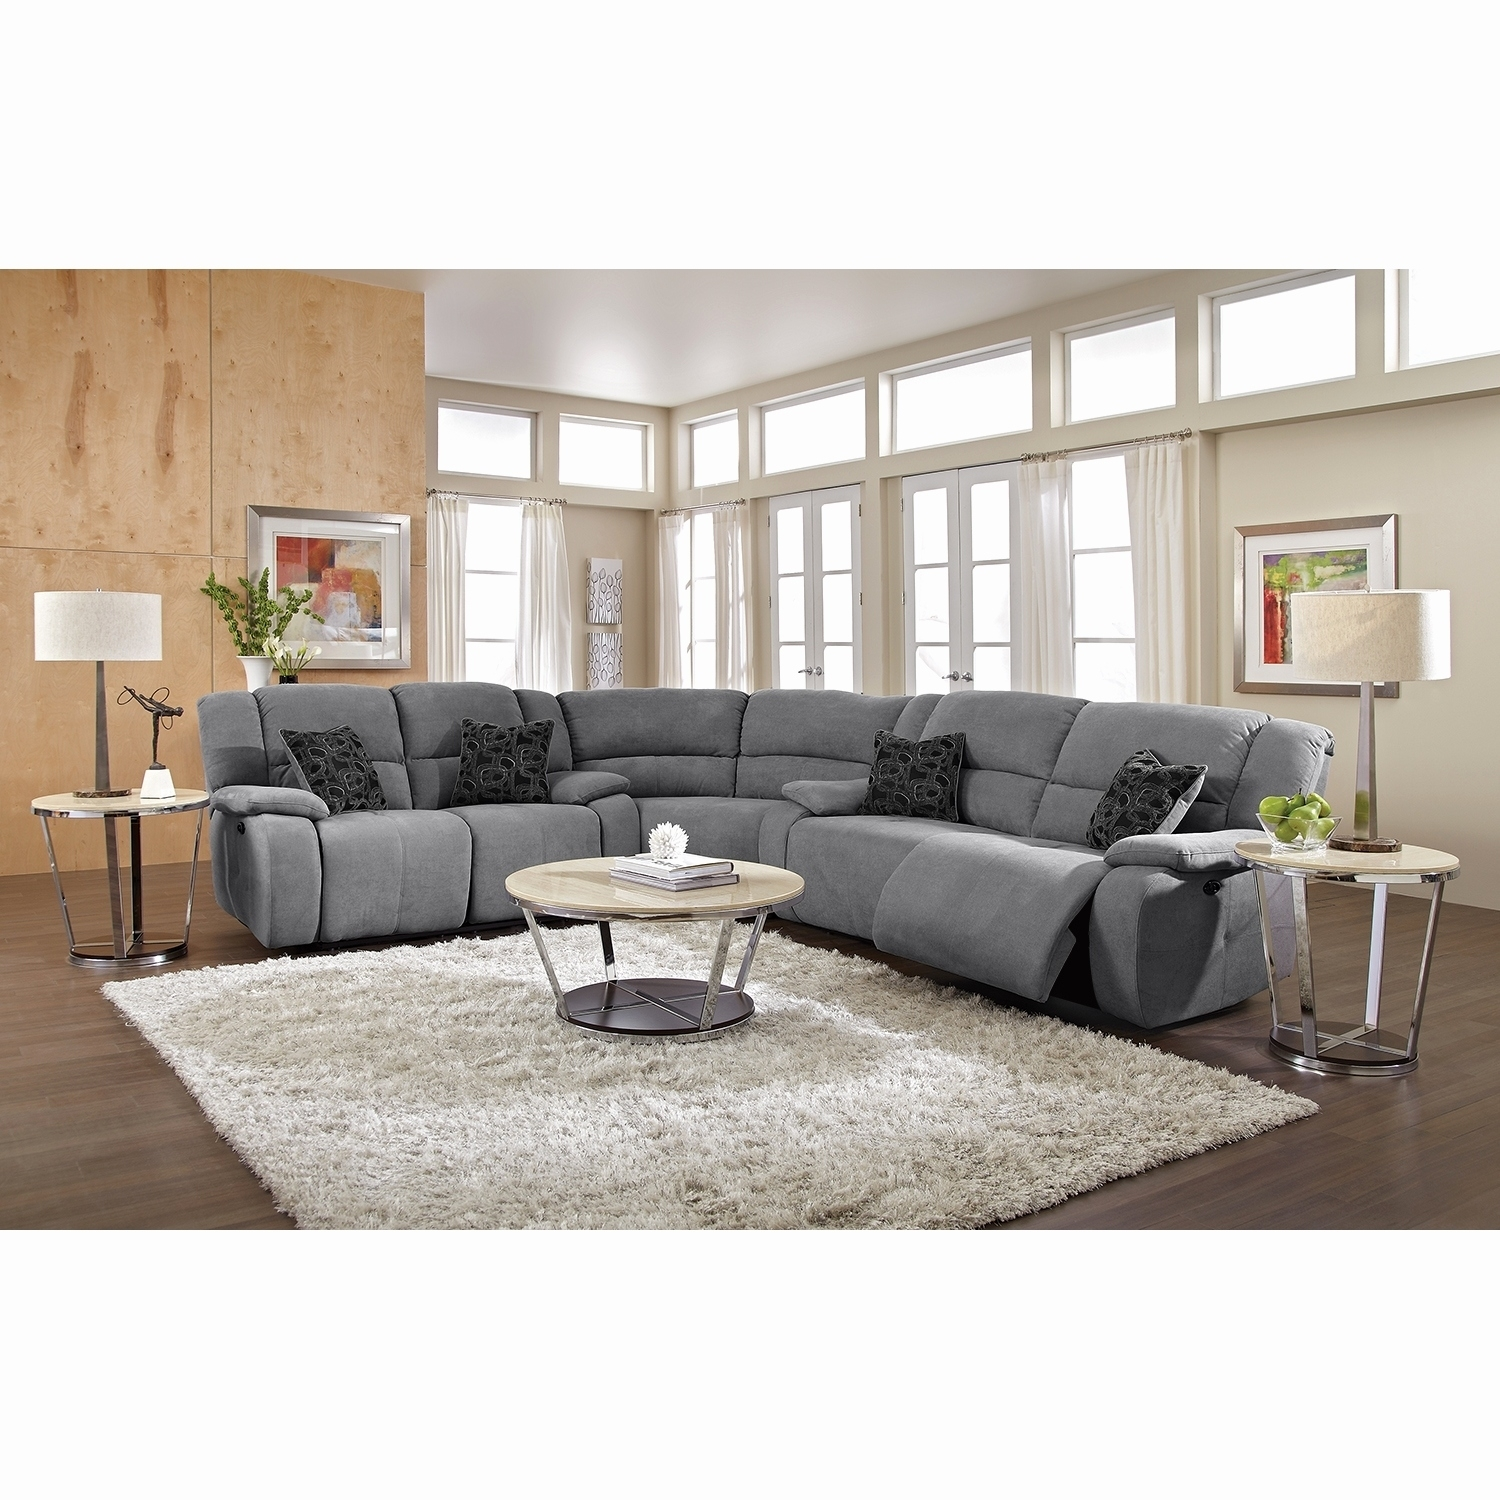 Living Room Furniture Dayton Oh Awesome Reclining Sectional Sofa throughout Dayton Ohio Sectional Sofas (Image 5 of 10)